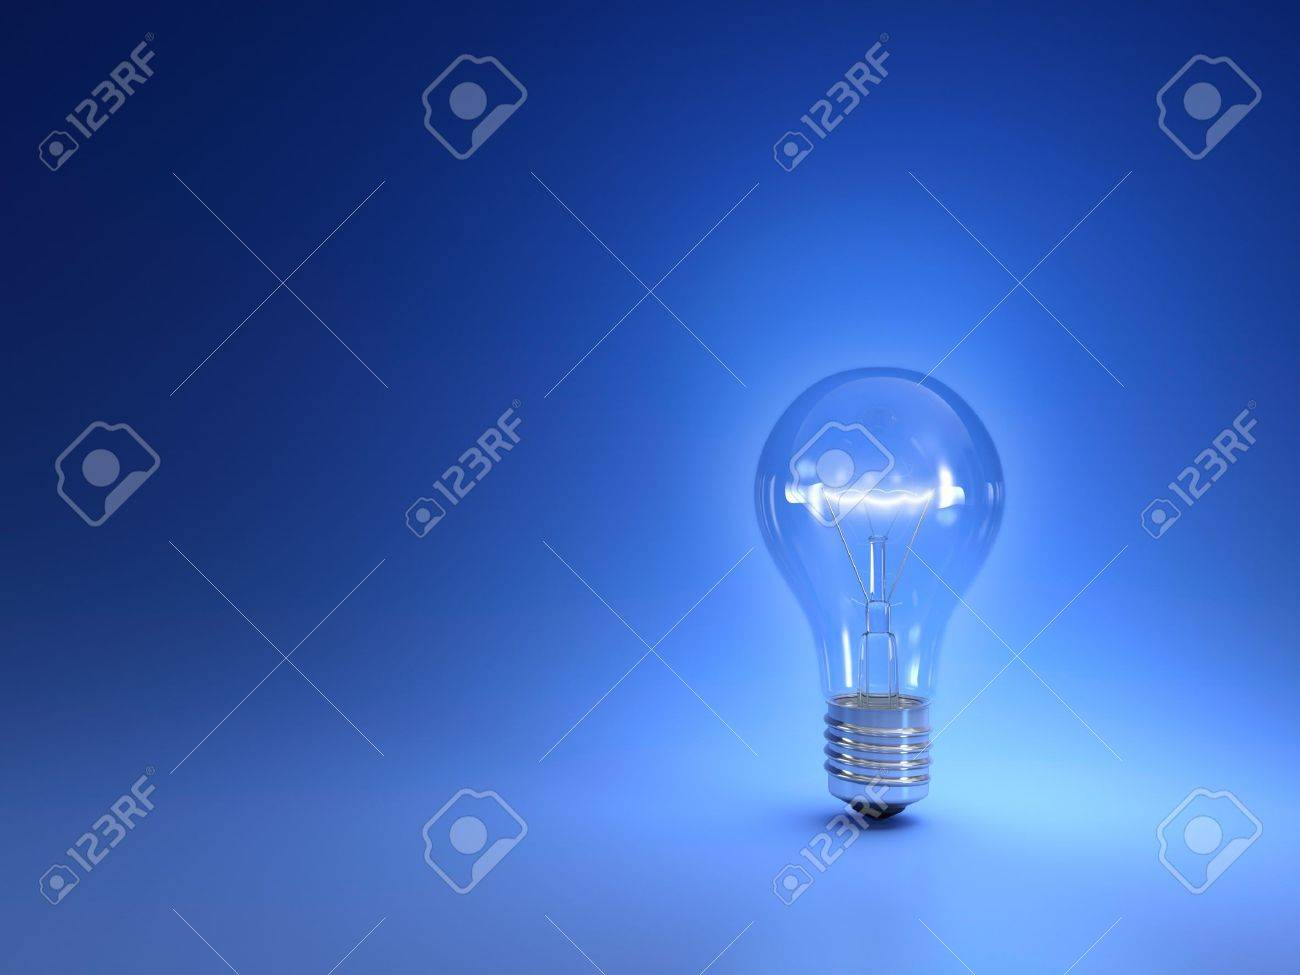 One simple glowing light bulb isolated on blue background Stock Photo - 14486845